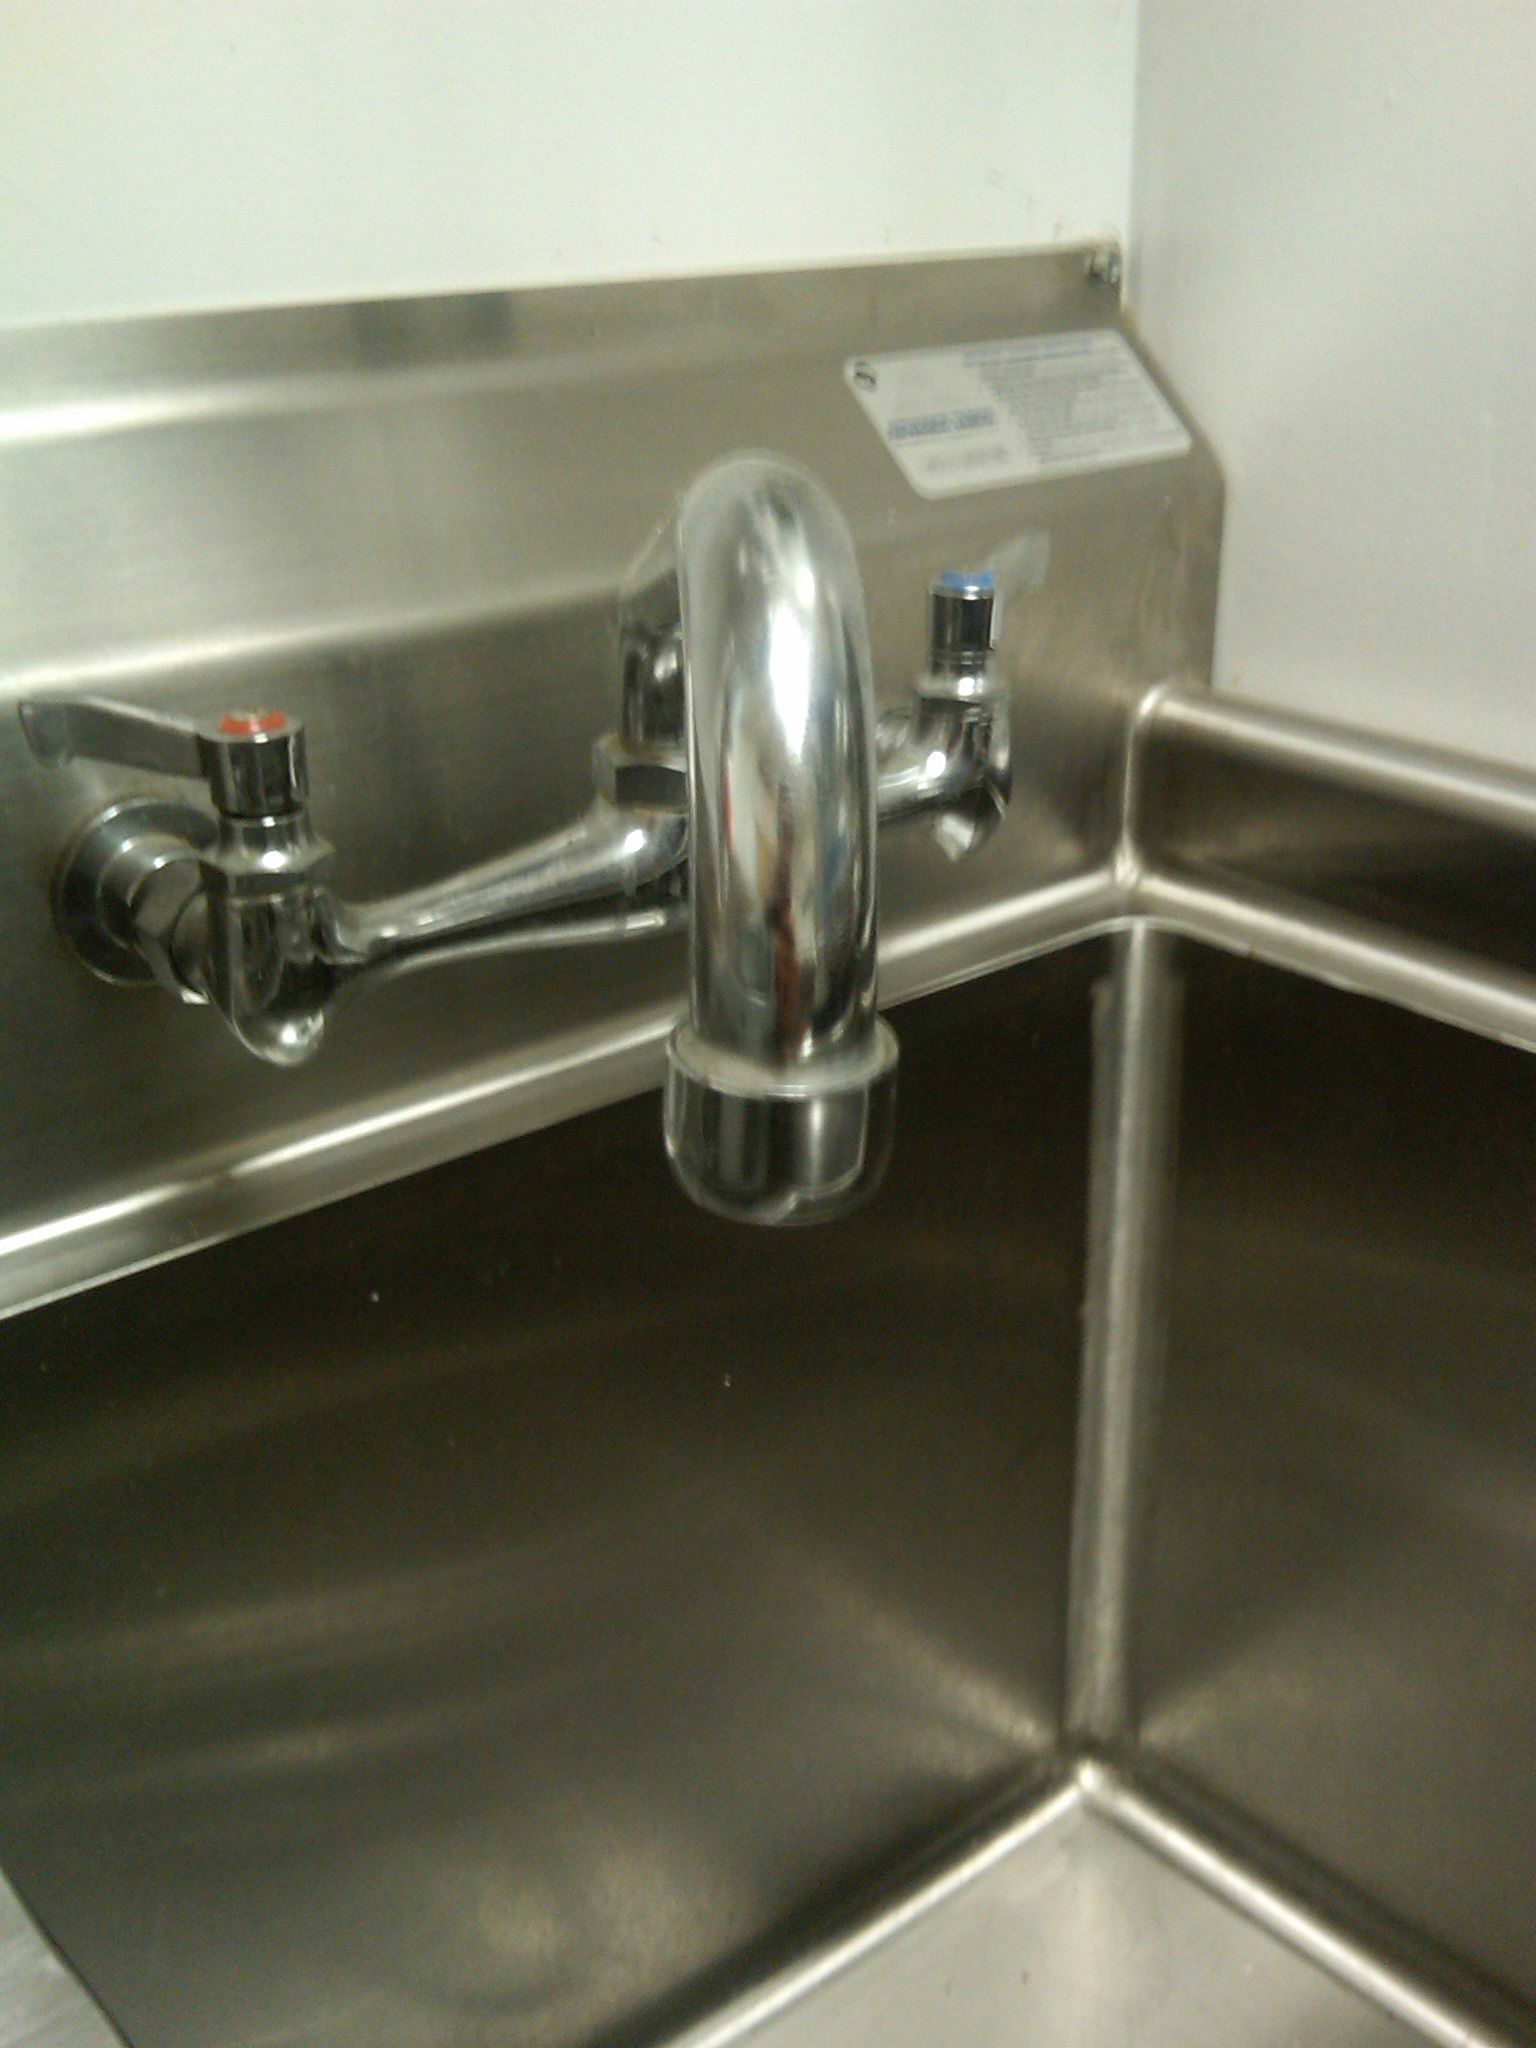 Ideas, types of aerators for faucets types of aerators for faucets why you need to install faucet aerators 1536 x 2048  .